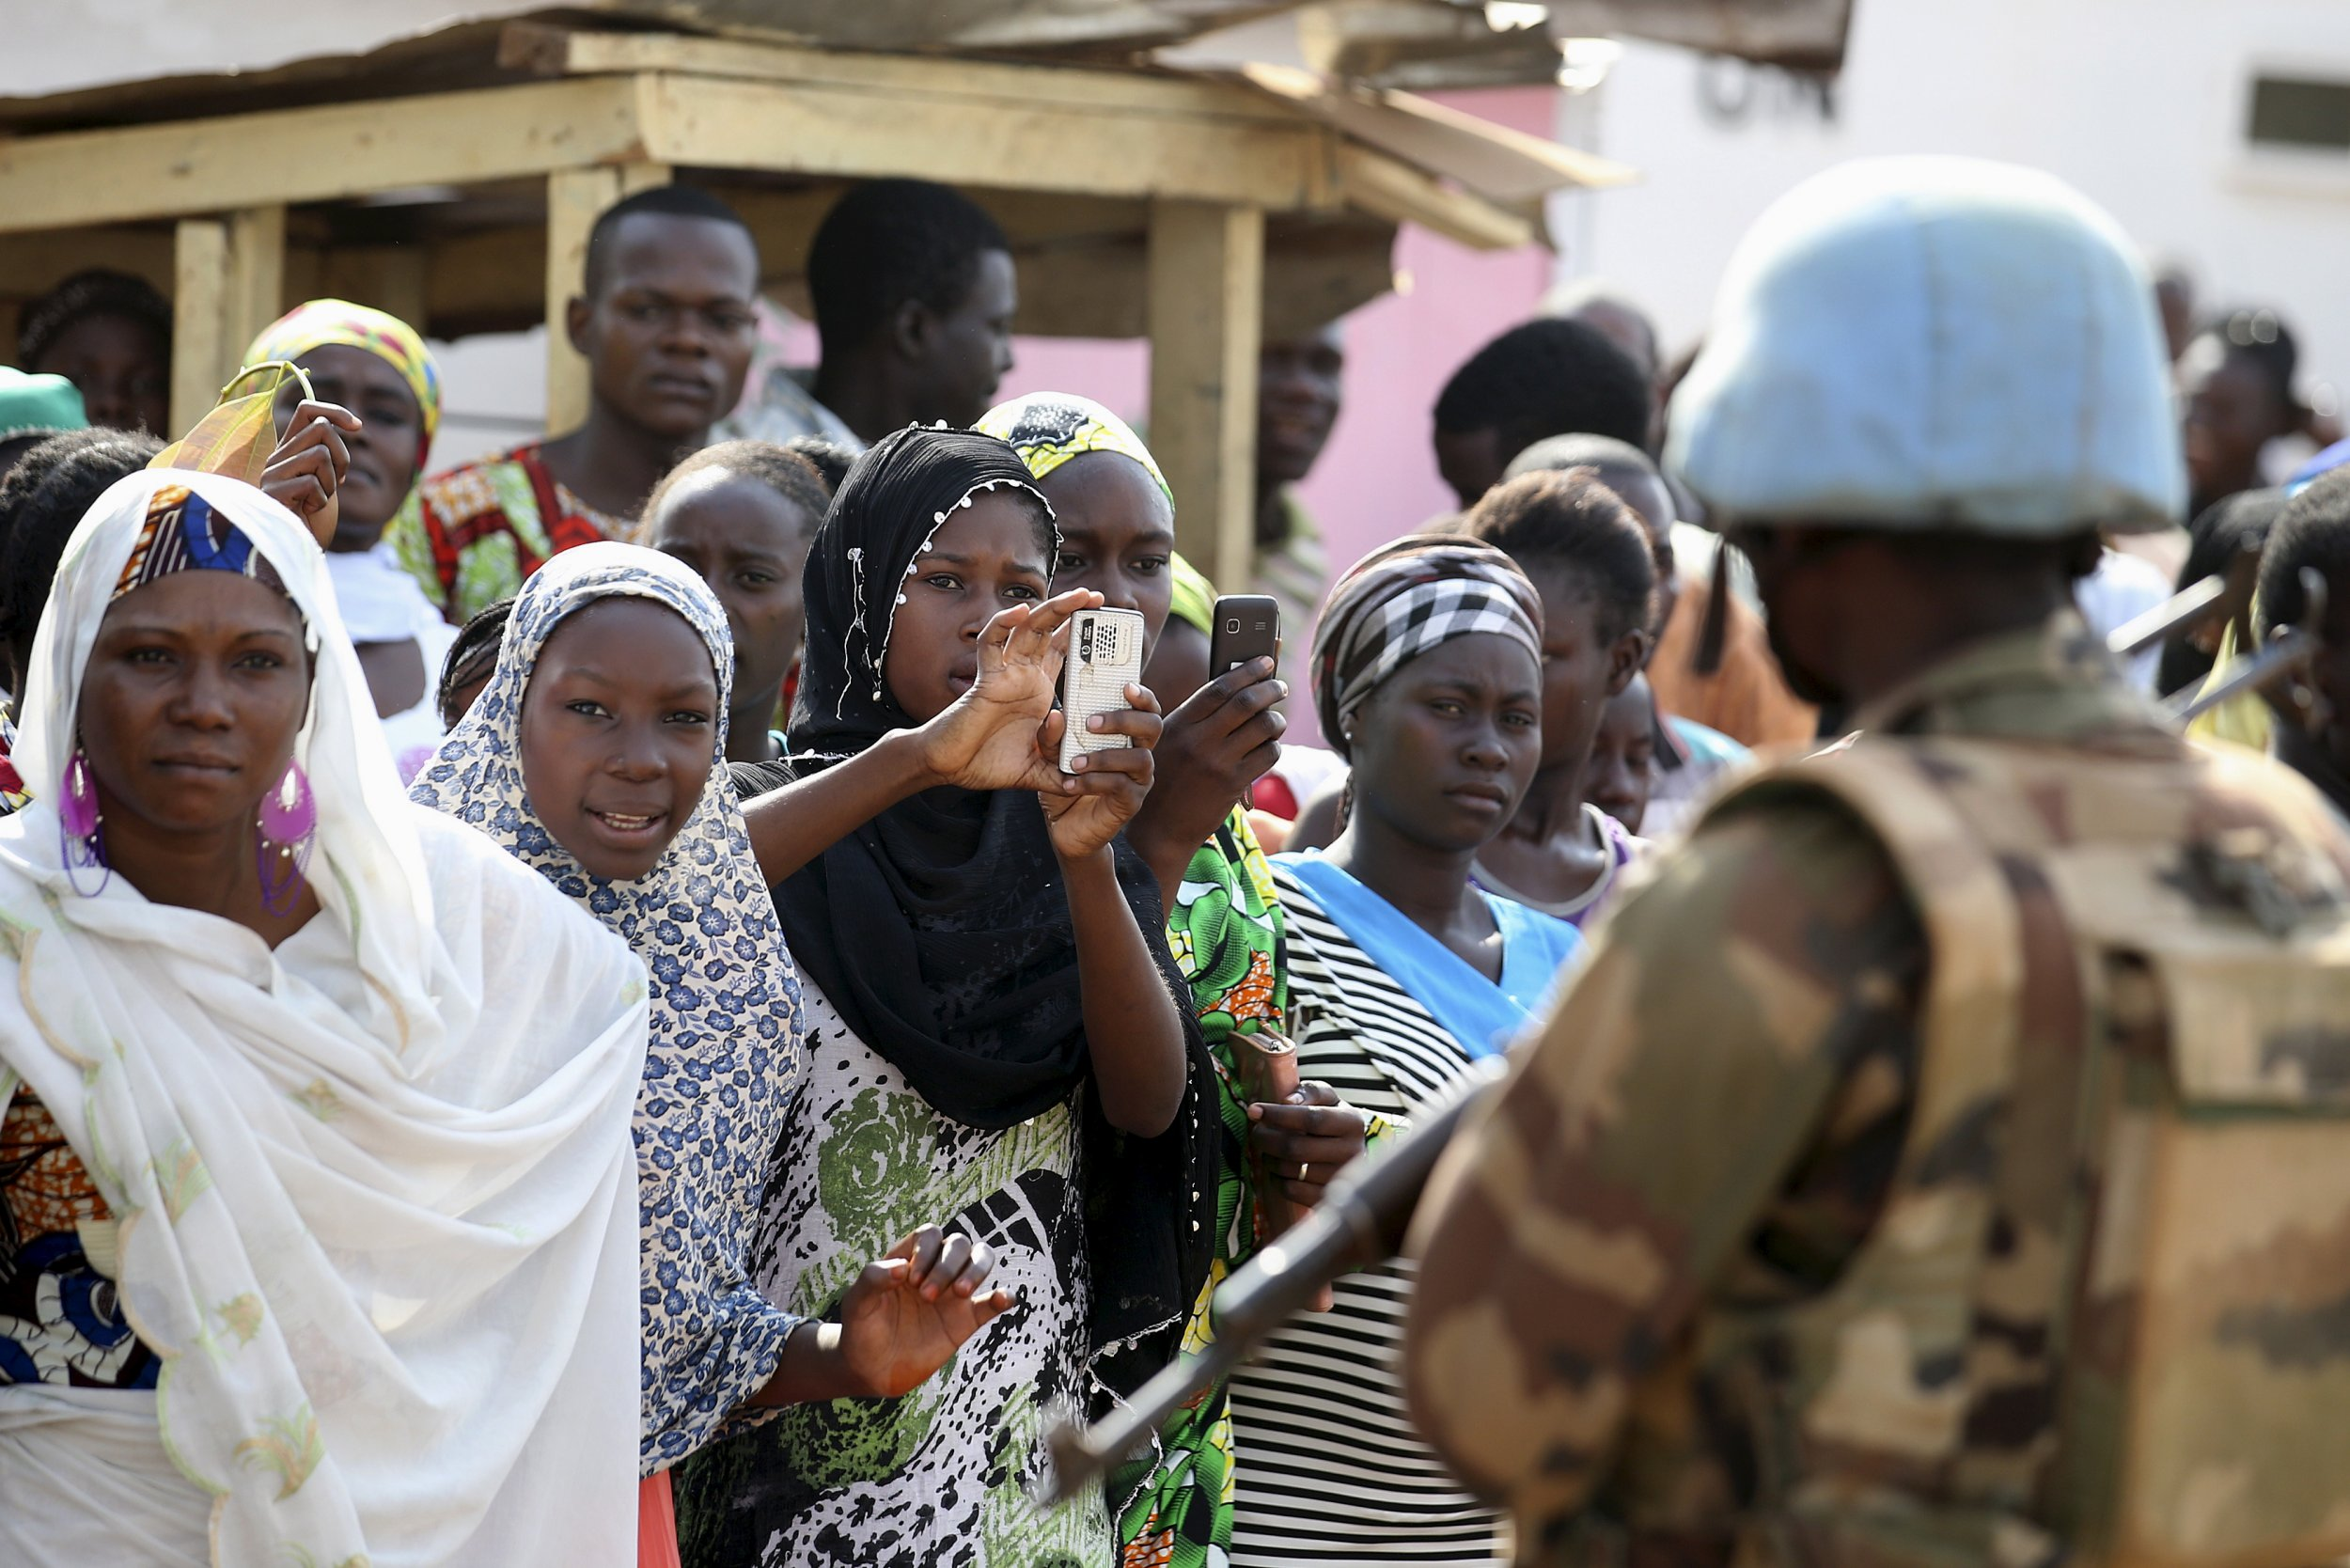 United Nations peacekeeper in Bangui, Central African Republic.